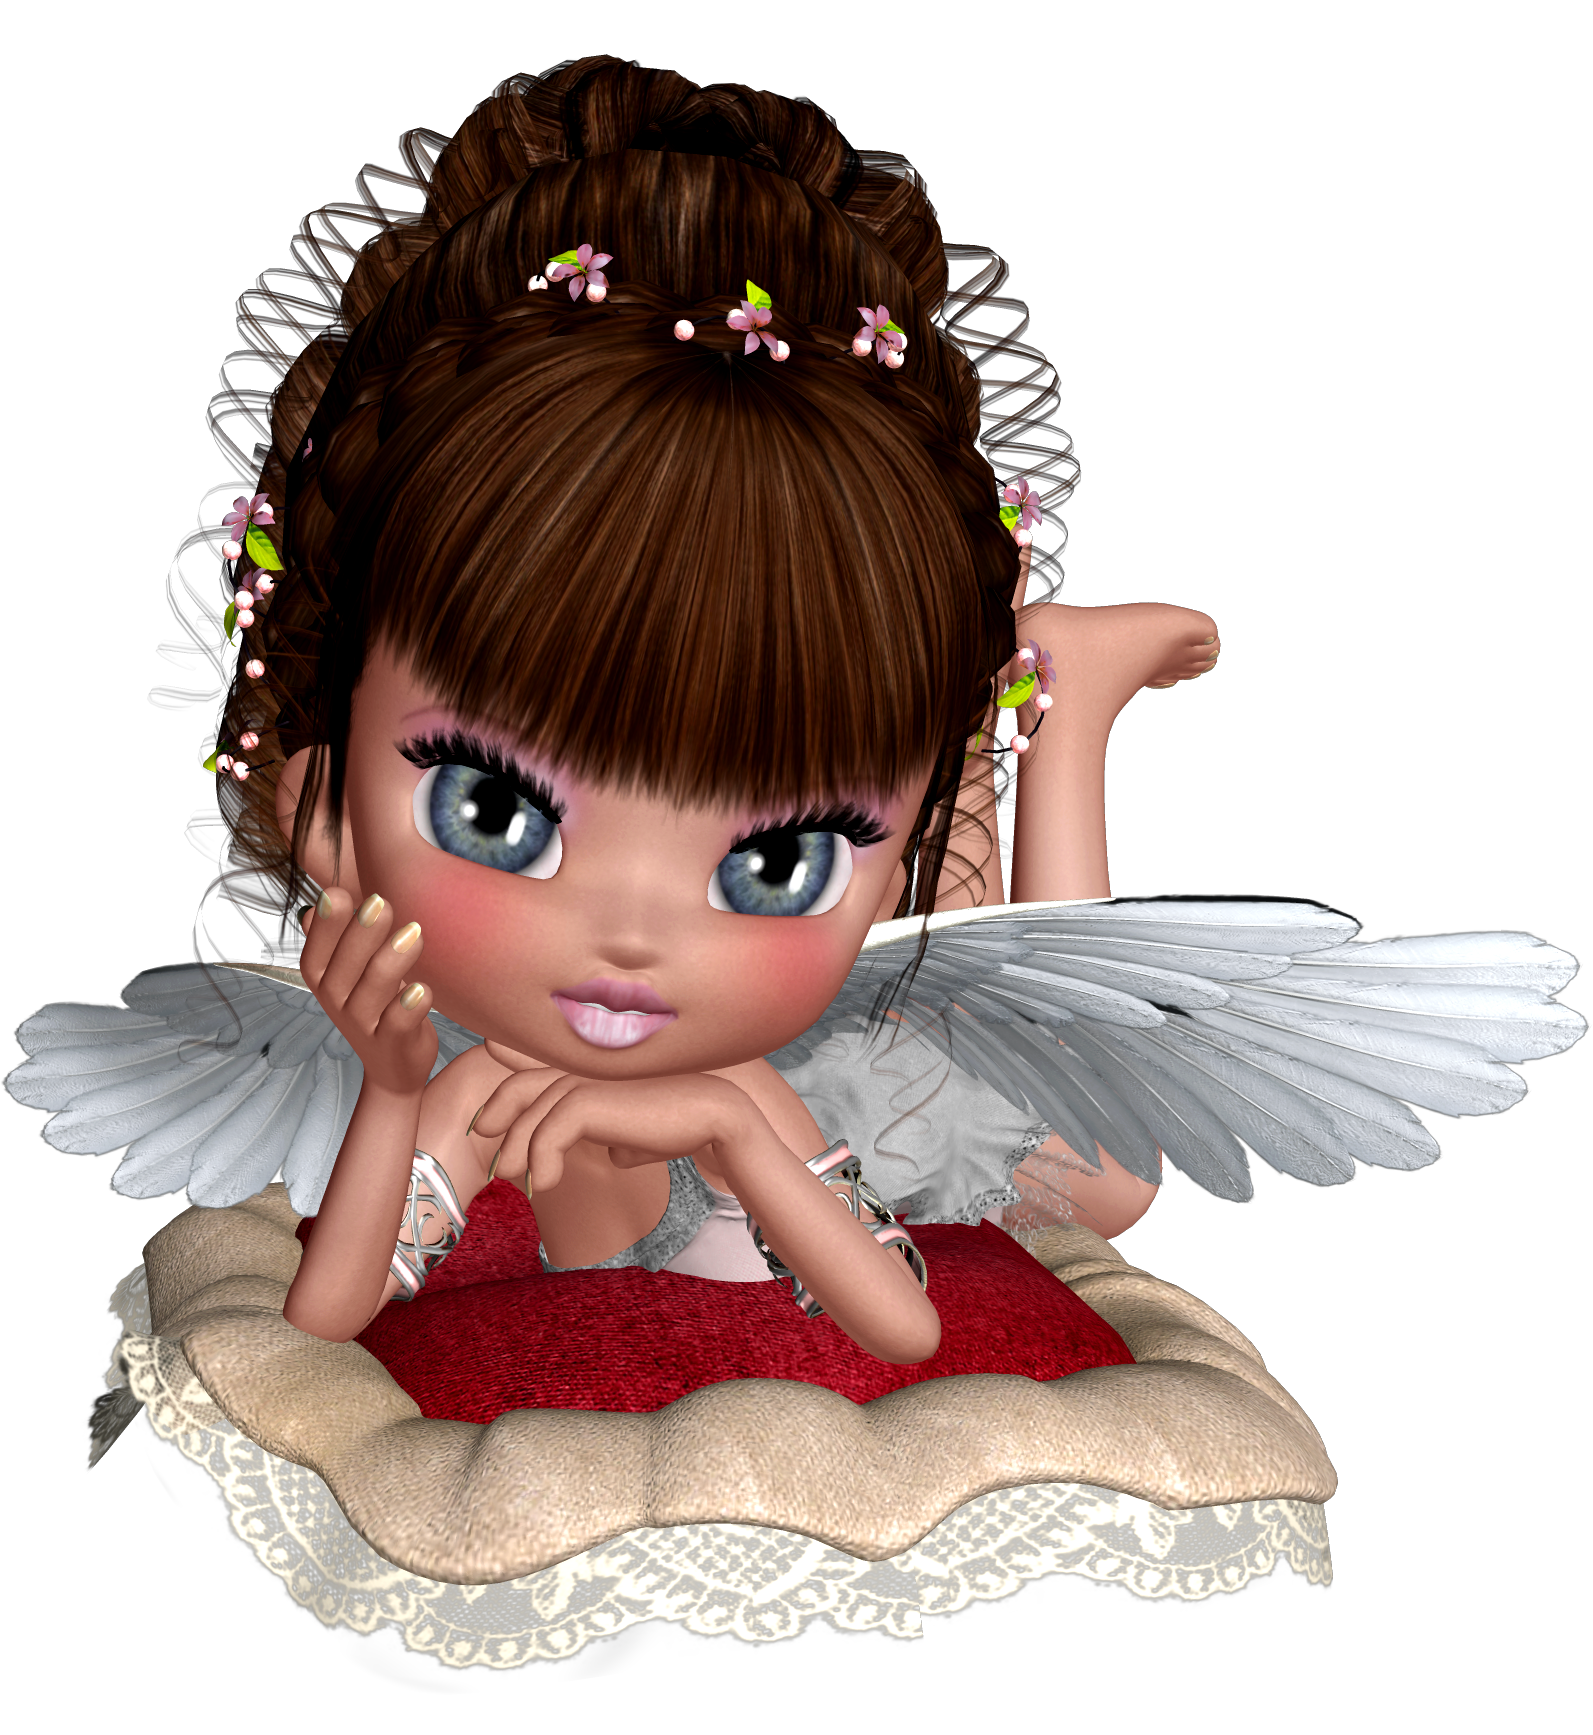 Eyelash clipart cute. D angel png picture